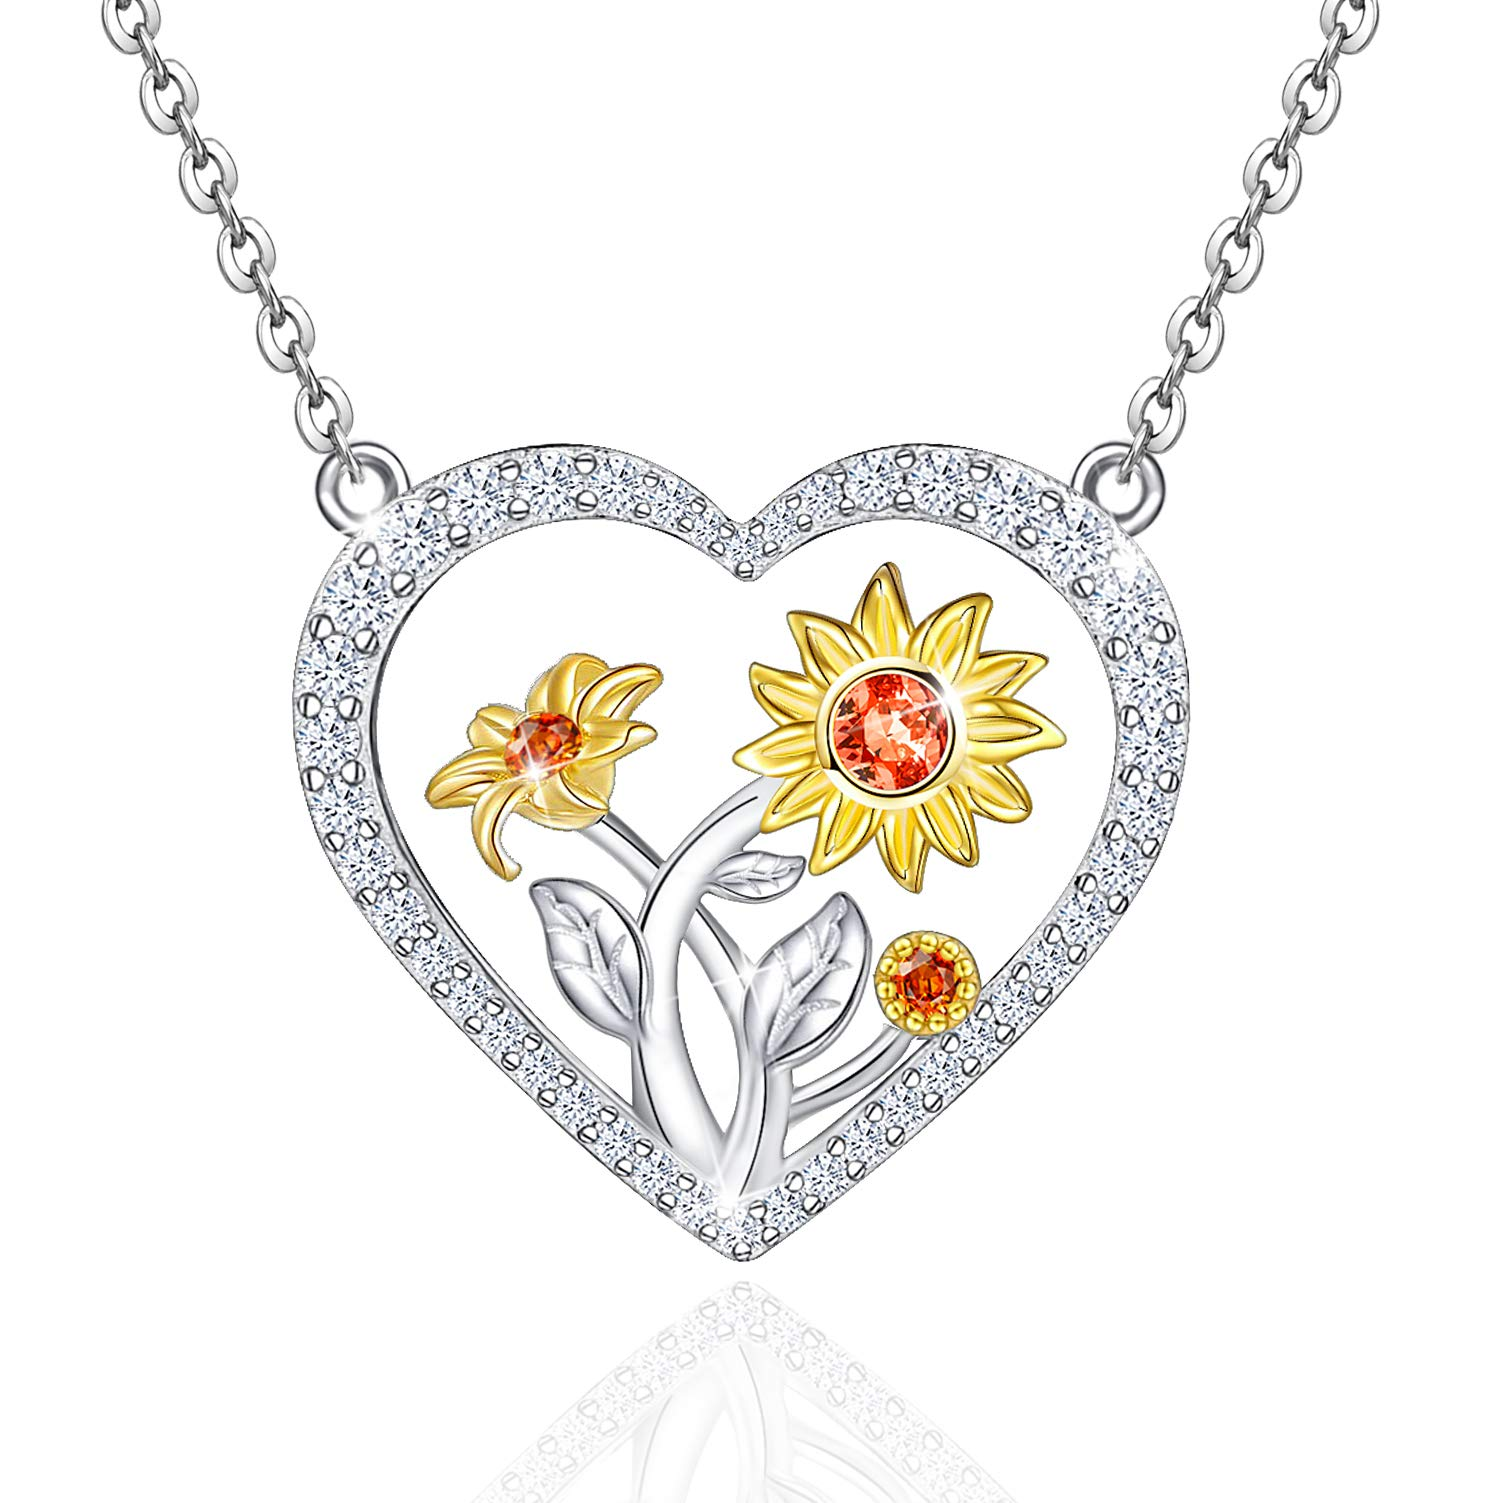 Distance 3 Sunflower Necklace for Women 925 Sterling Silver You are My Sunshine Love Heart Necklace Pendant Jewelry for Girls Daughter